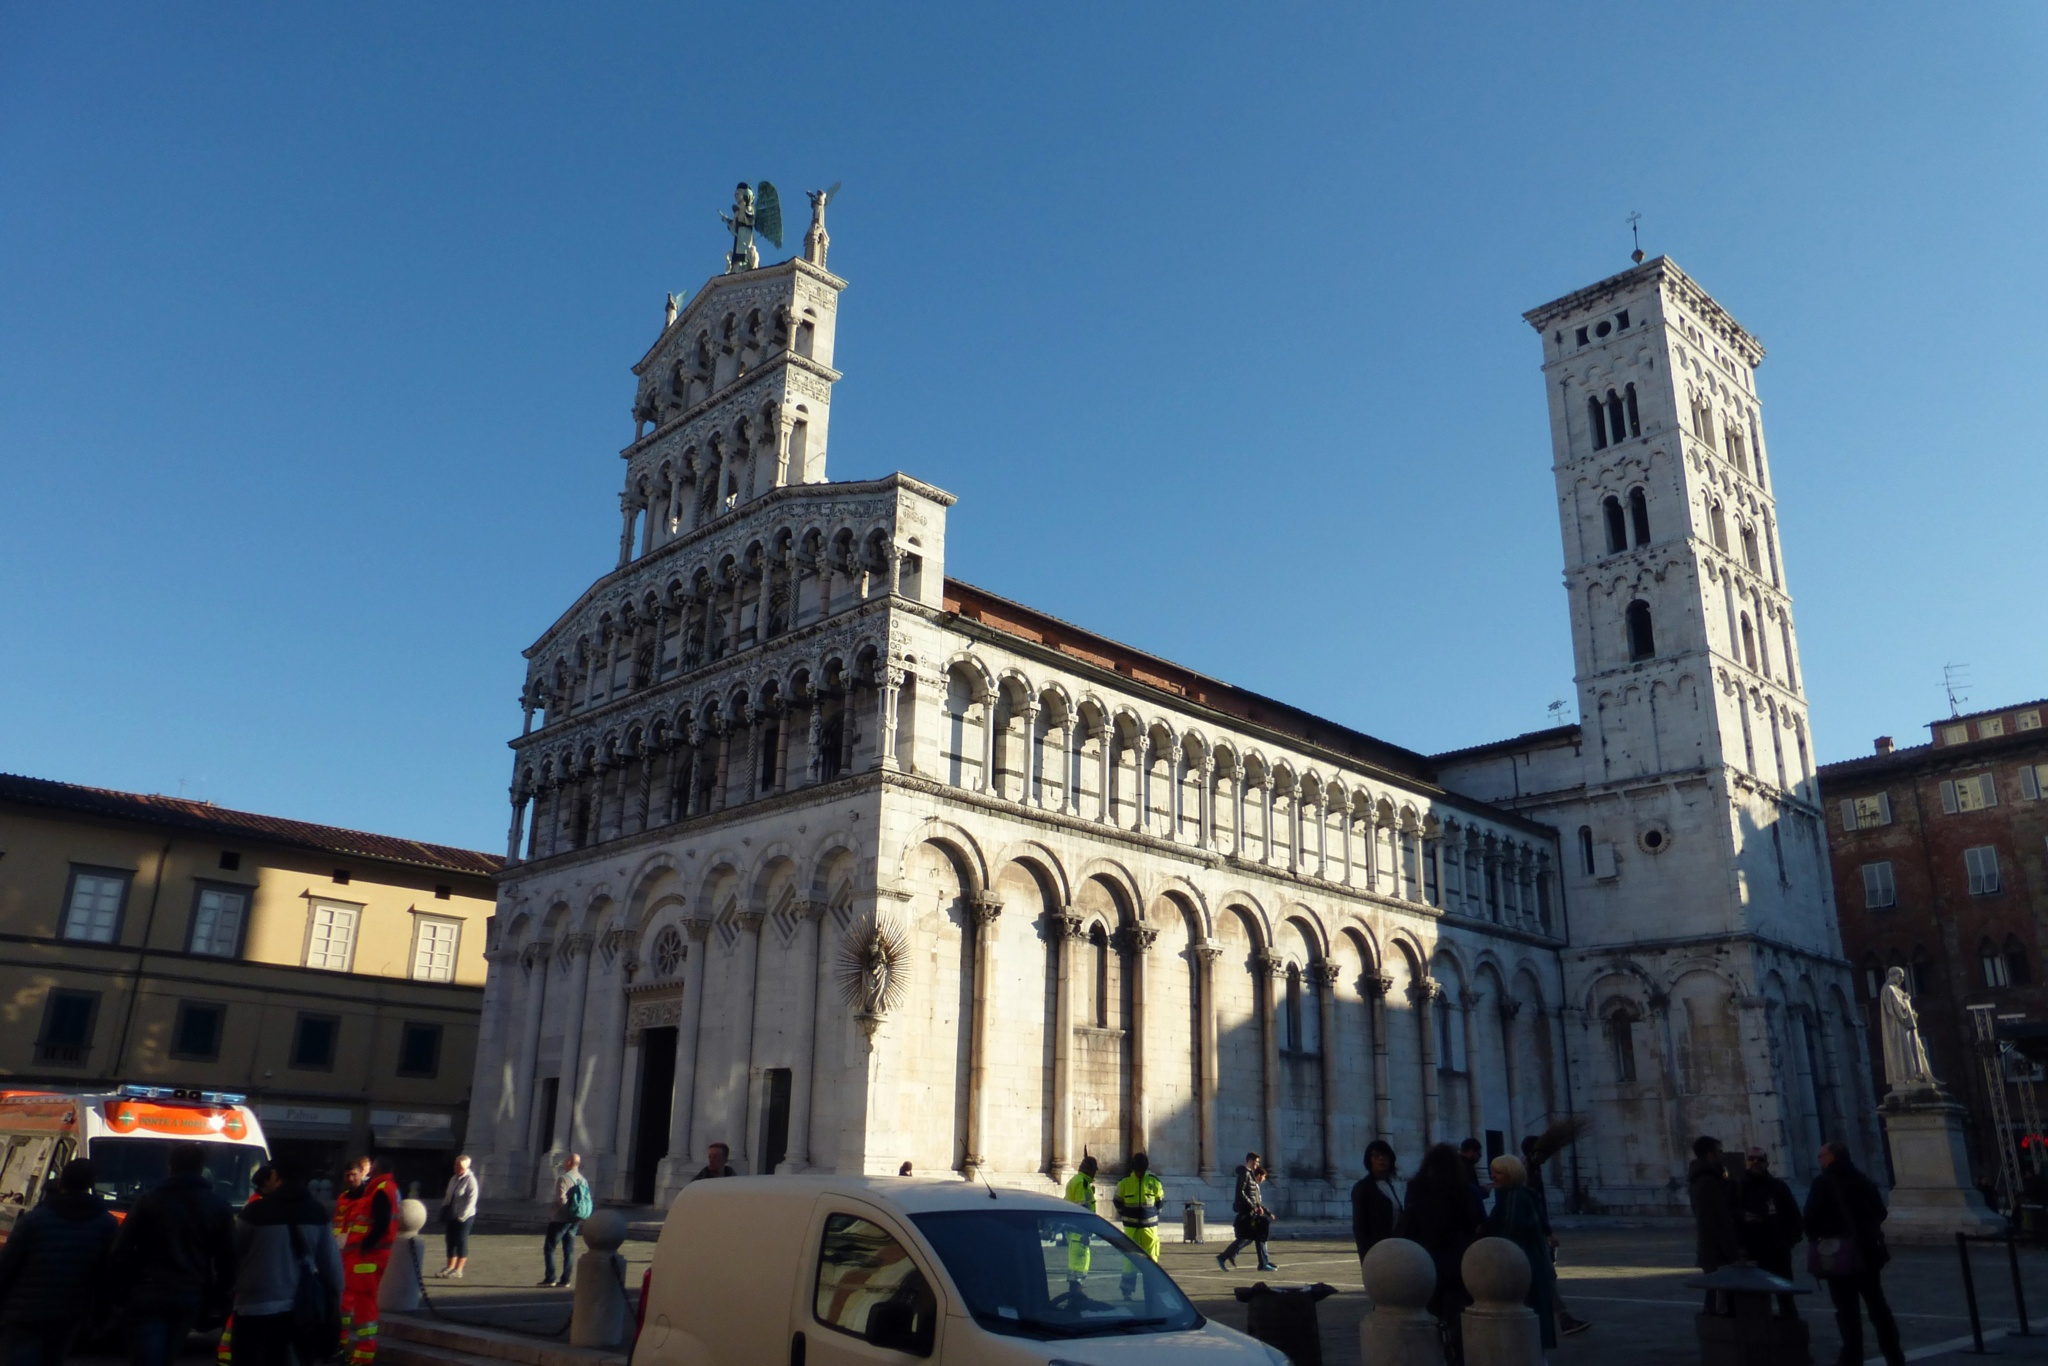 church at lucca by Misa Amane